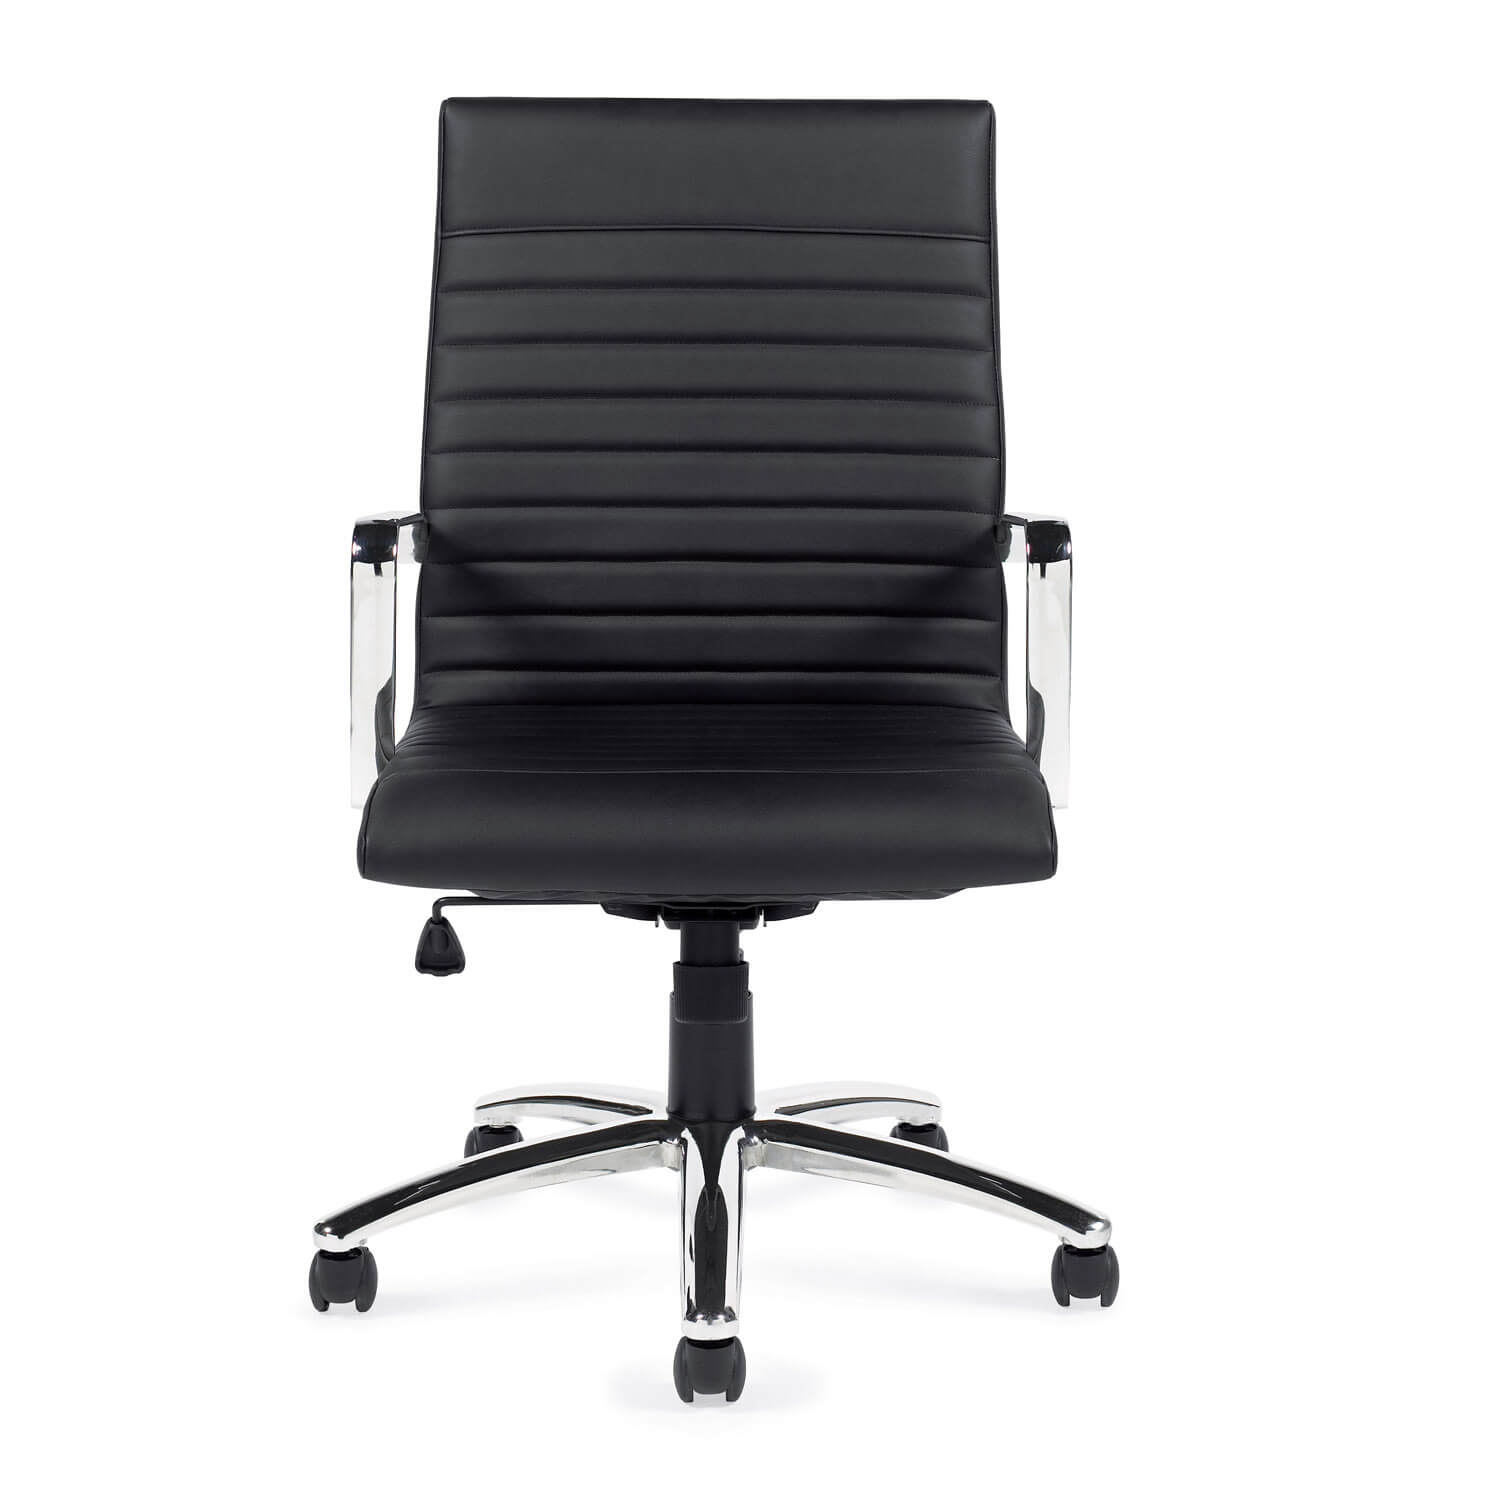 Conference style seating CUB 11730B GTO